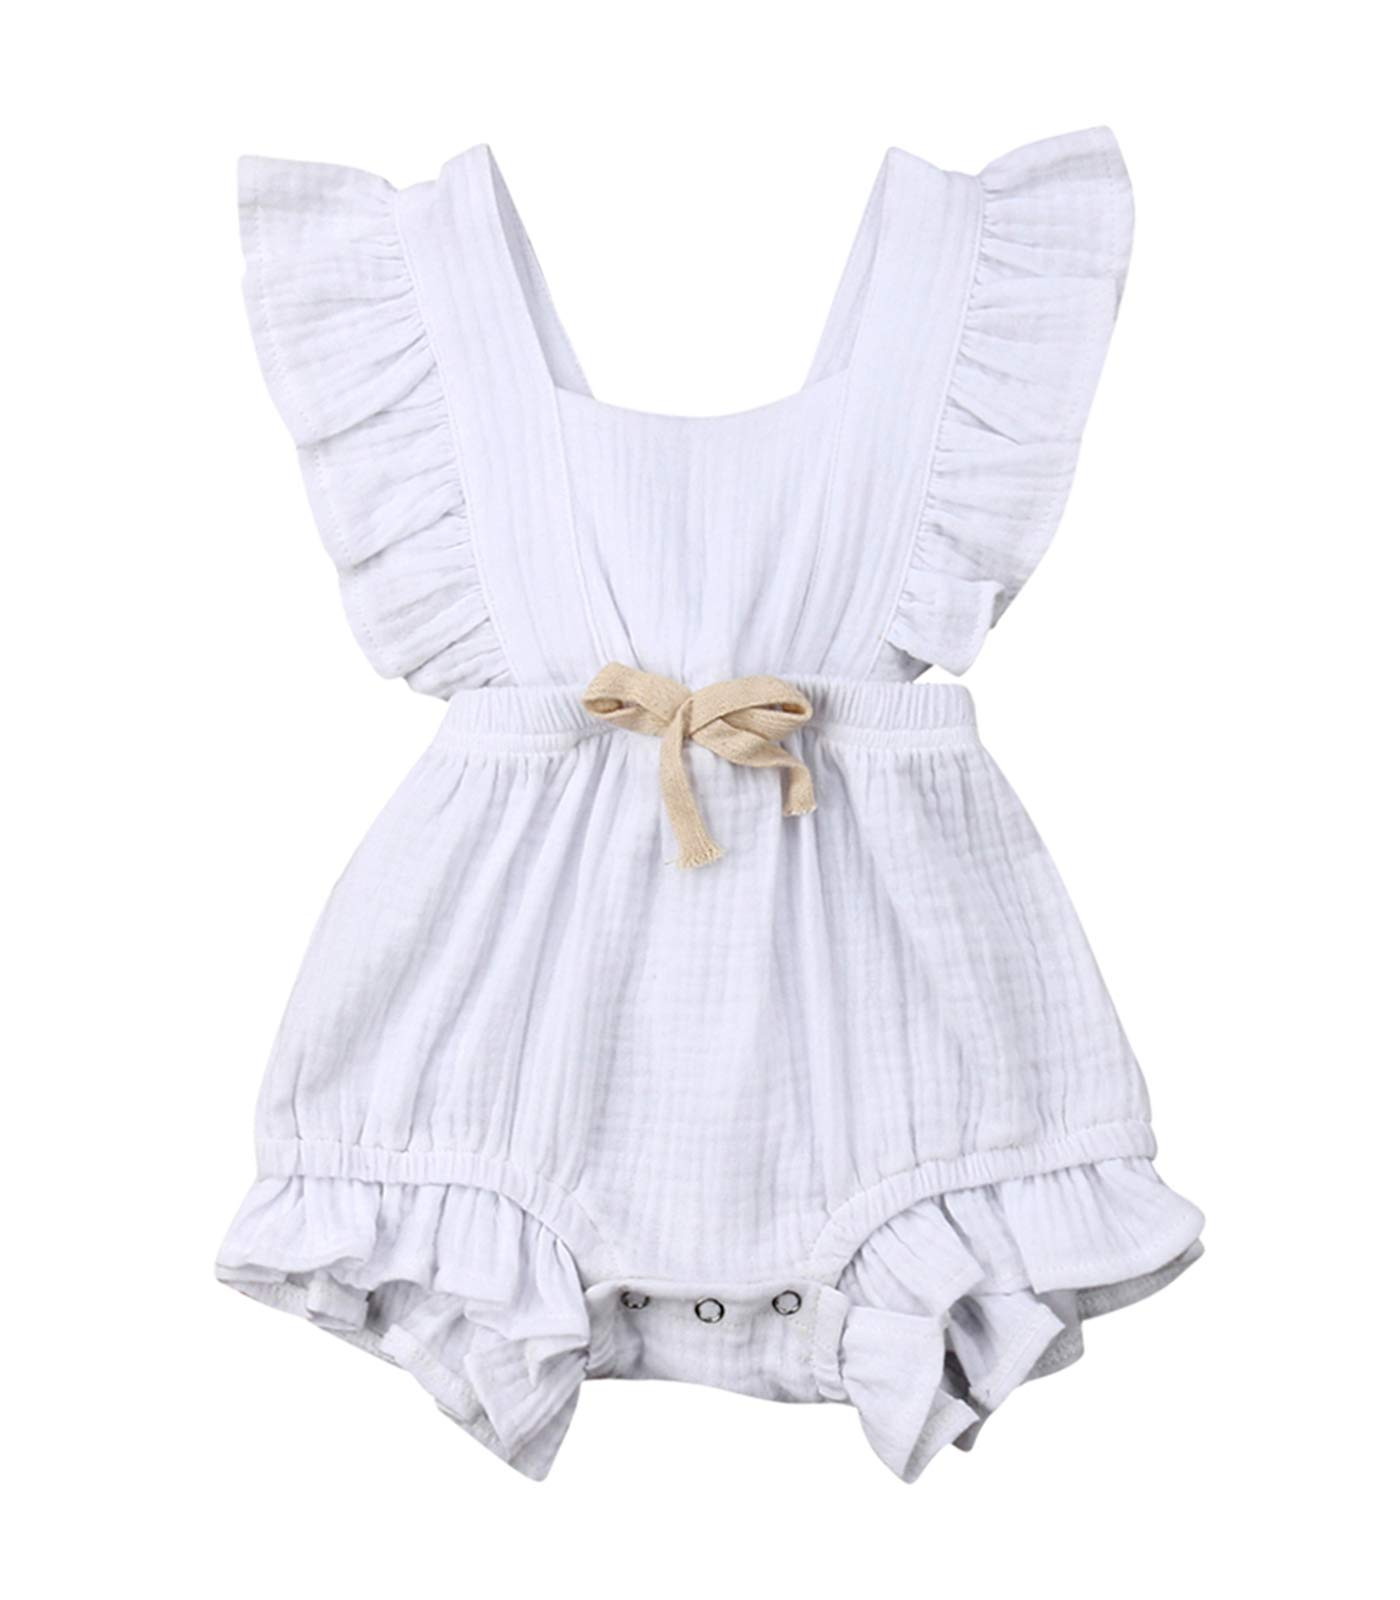 VISGOGO Toddler Baby Girl Ruffled Rompers Sleeveless Cotton Romper Bodysuit Jumpsuit Clothes (18-24 Months, White)